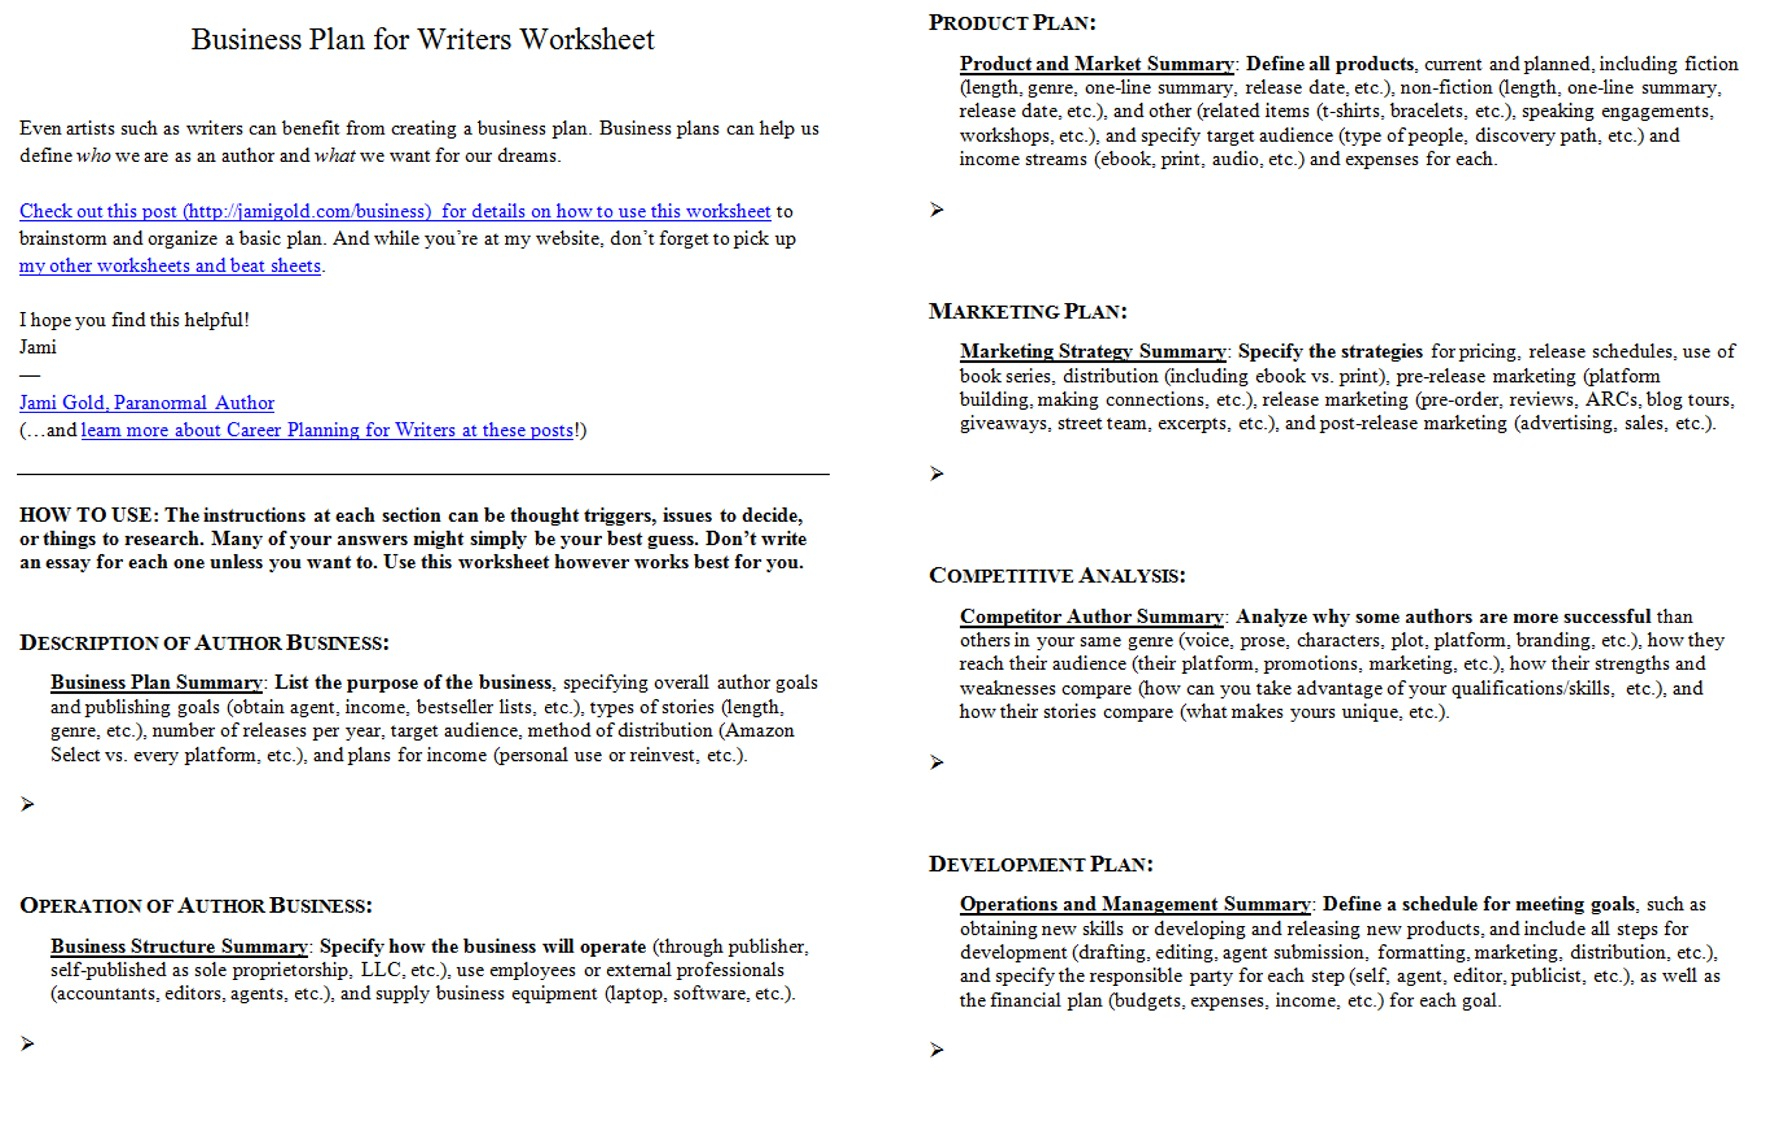 Weirdmailus  Picturesque Worksheets For Writers  Jami Gold Paranormal Author With Likable Screen Shot Of Both Pages Of The Business Plan For Writers Worksheet With Attractive Vowel Blend Worksheets Also Odd And Even Numbers Ks Worksheet In Addition Homophones Worksheet For Grade  And Halloween Worksheets For Children As Well As Free Printable Worksheets For Year  Additionally Print Math Worksheets Th Grade From Jamigoldcom With Weirdmailus  Likable Worksheets For Writers  Jami Gold Paranormal Author With Attractive Screen Shot Of Both Pages Of The Business Plan For Writers Worksheet And Picturesque Vowel Blend Worksheets Also Odd And Even Numbers Ks Worksheet In Addition Homophones Worksheet For Grade  From Jamigoldcom